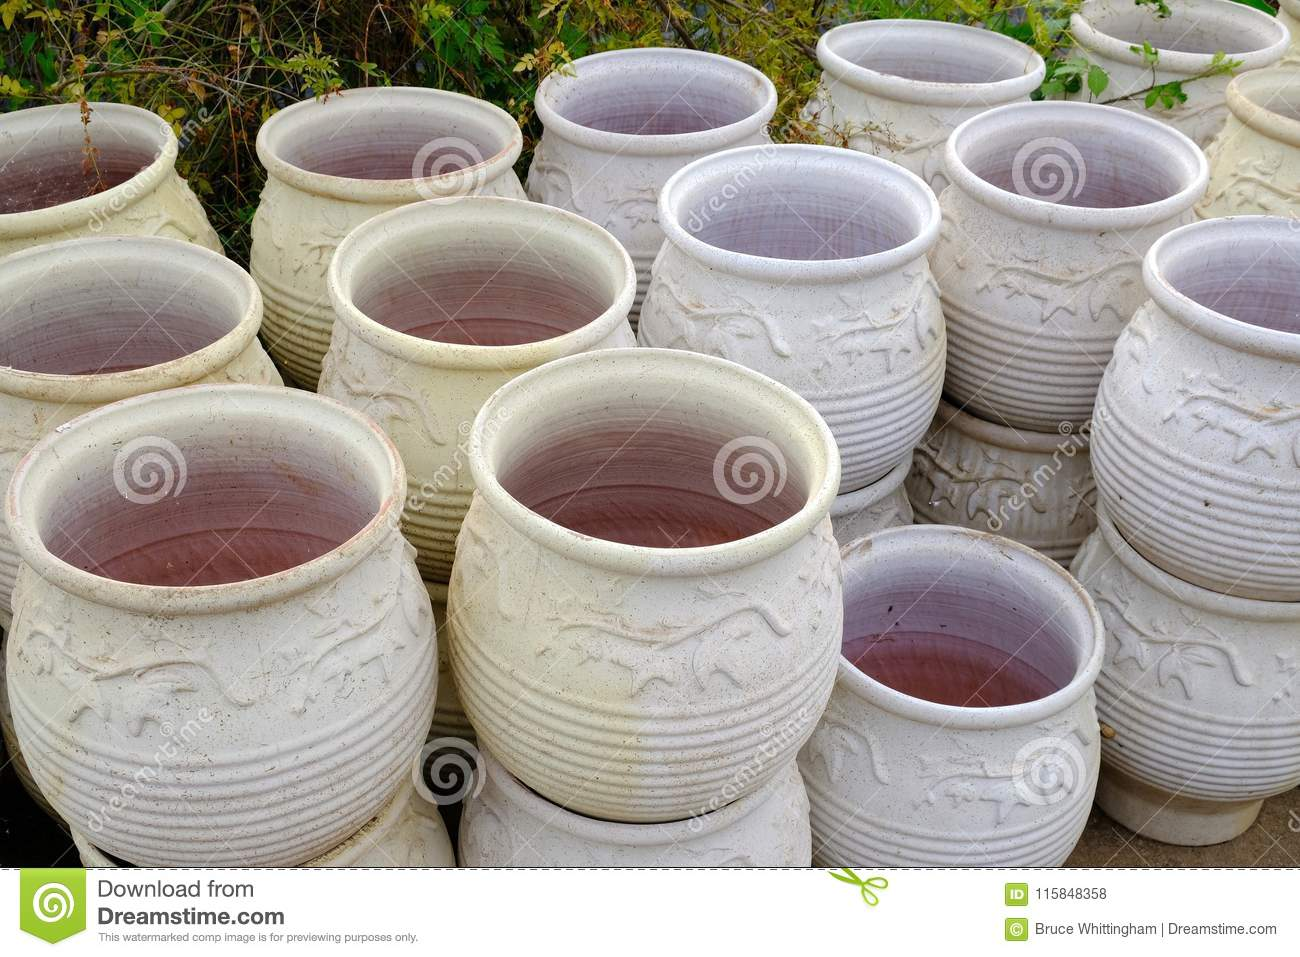 Grand Pot De Jardin Grands Pots Ou Urnes De Jardin De Terre Cuite Photo Stock Image